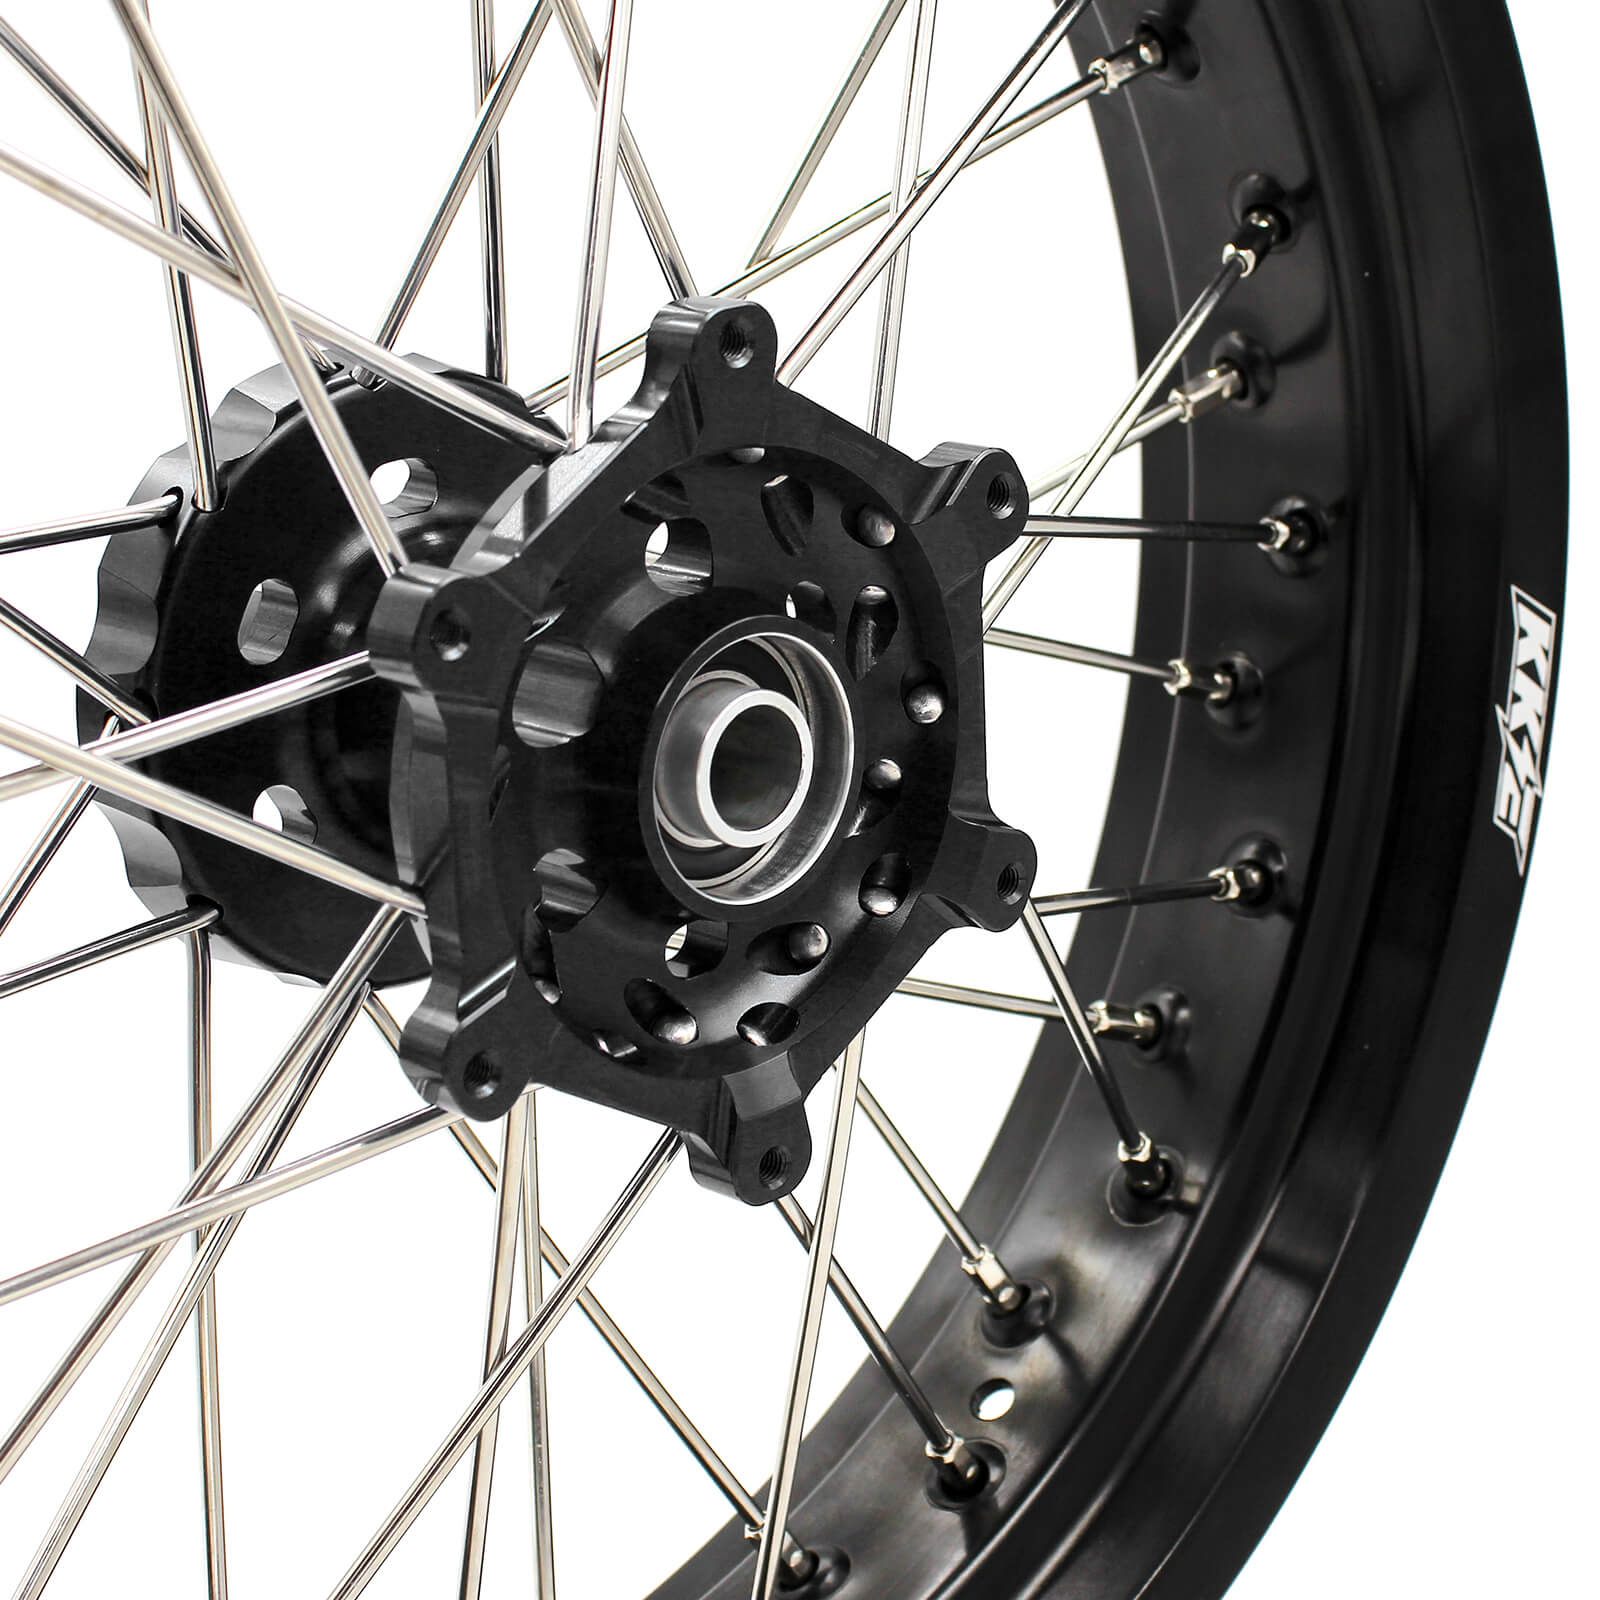 3.5/4.25 DRZ400 00-04 DRZ400E 00-07 DRZ400S 00-18 DRZ400SM 05-18 SUPERMOTO WHEELS SET FOR SUZUKI BLACK HUBS